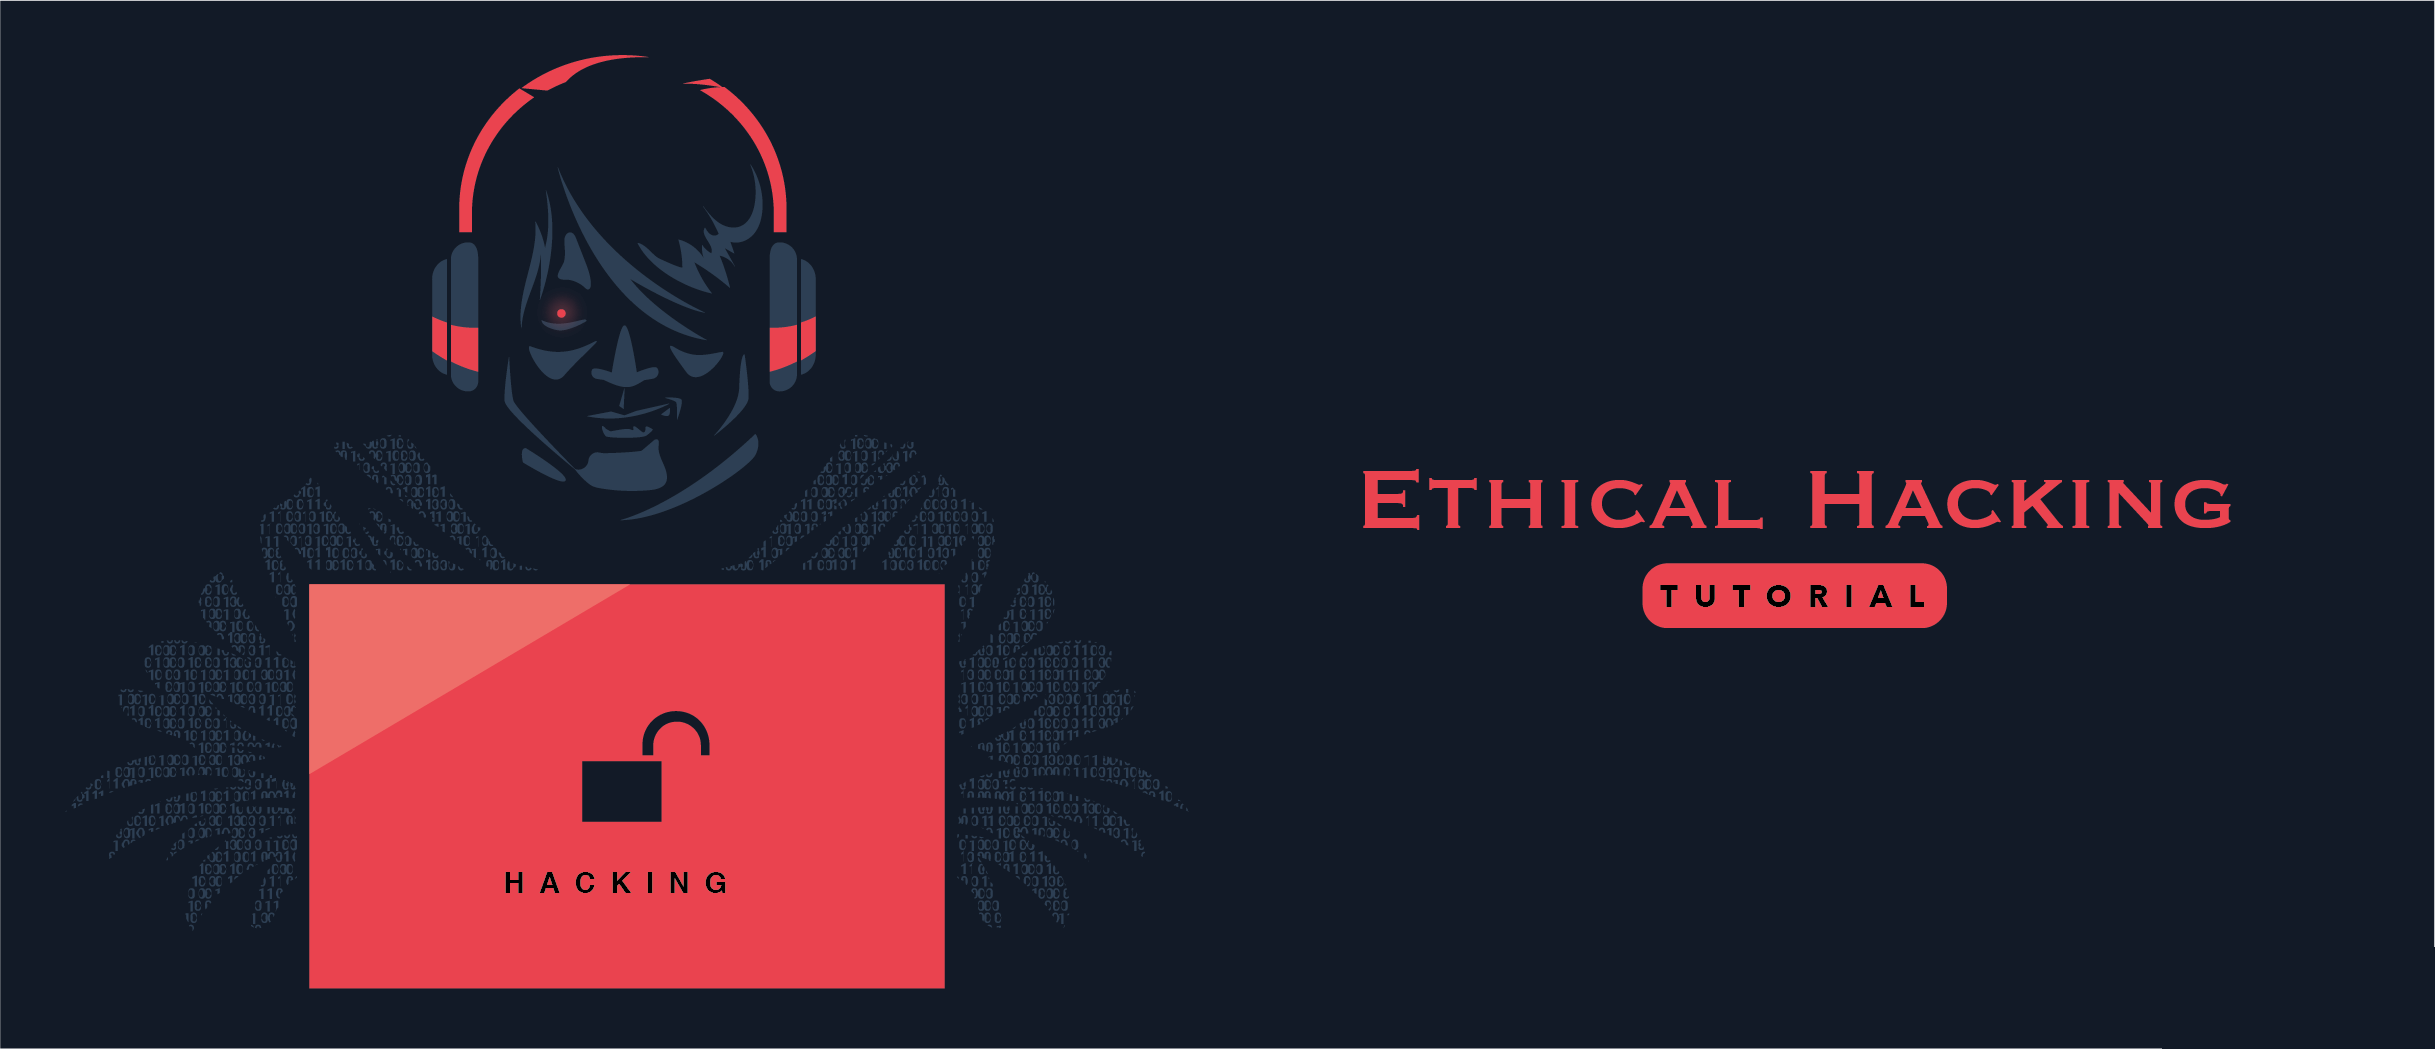 What is Ethical Hacking